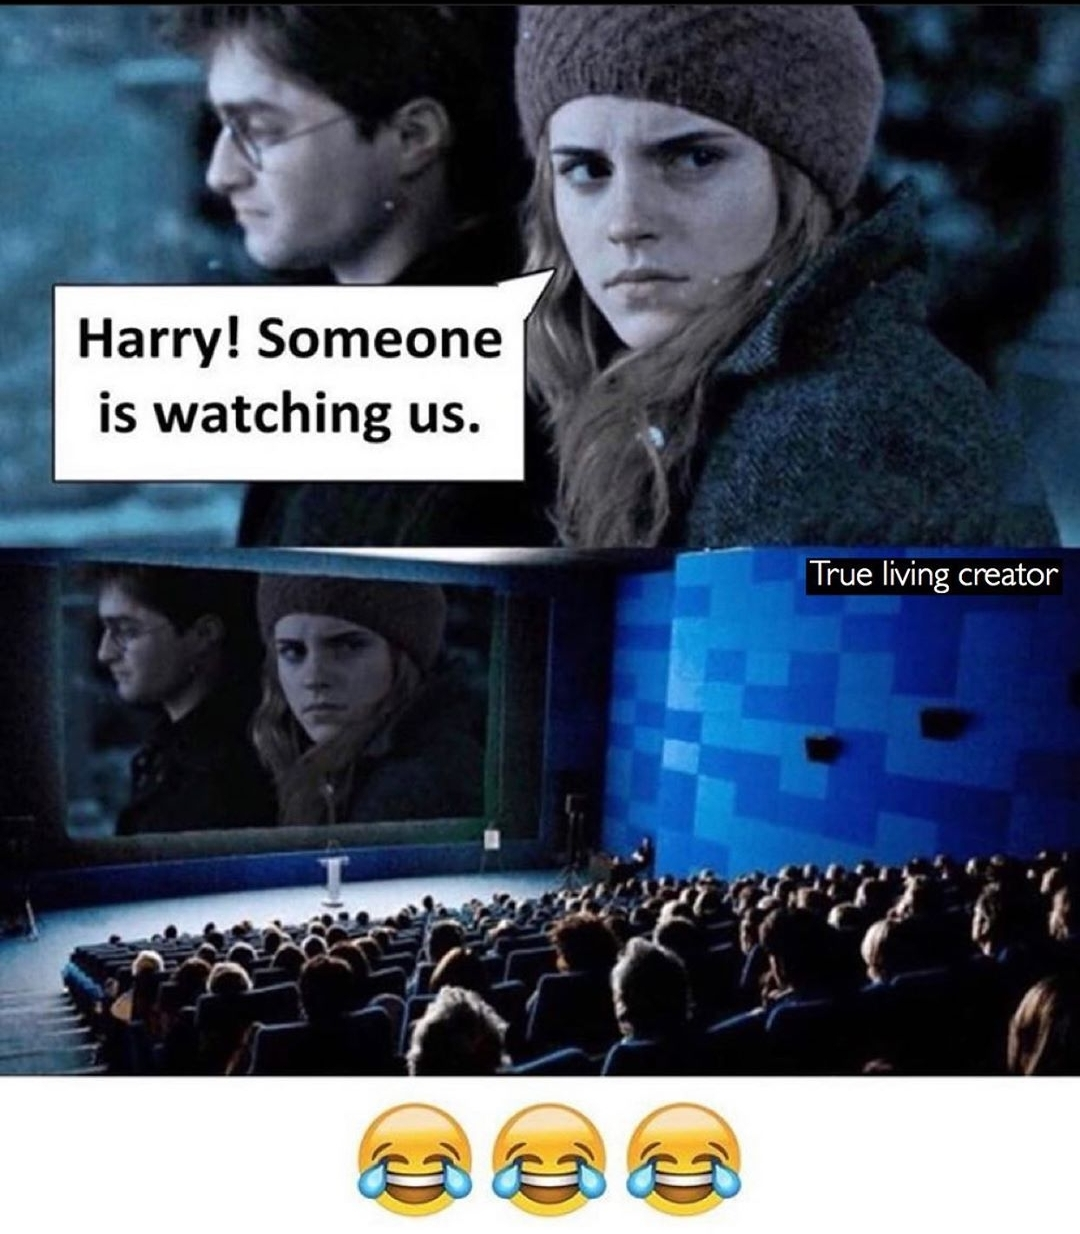 omg so hilarious 😂😂😂 they were watching them all the time 😂😂😂